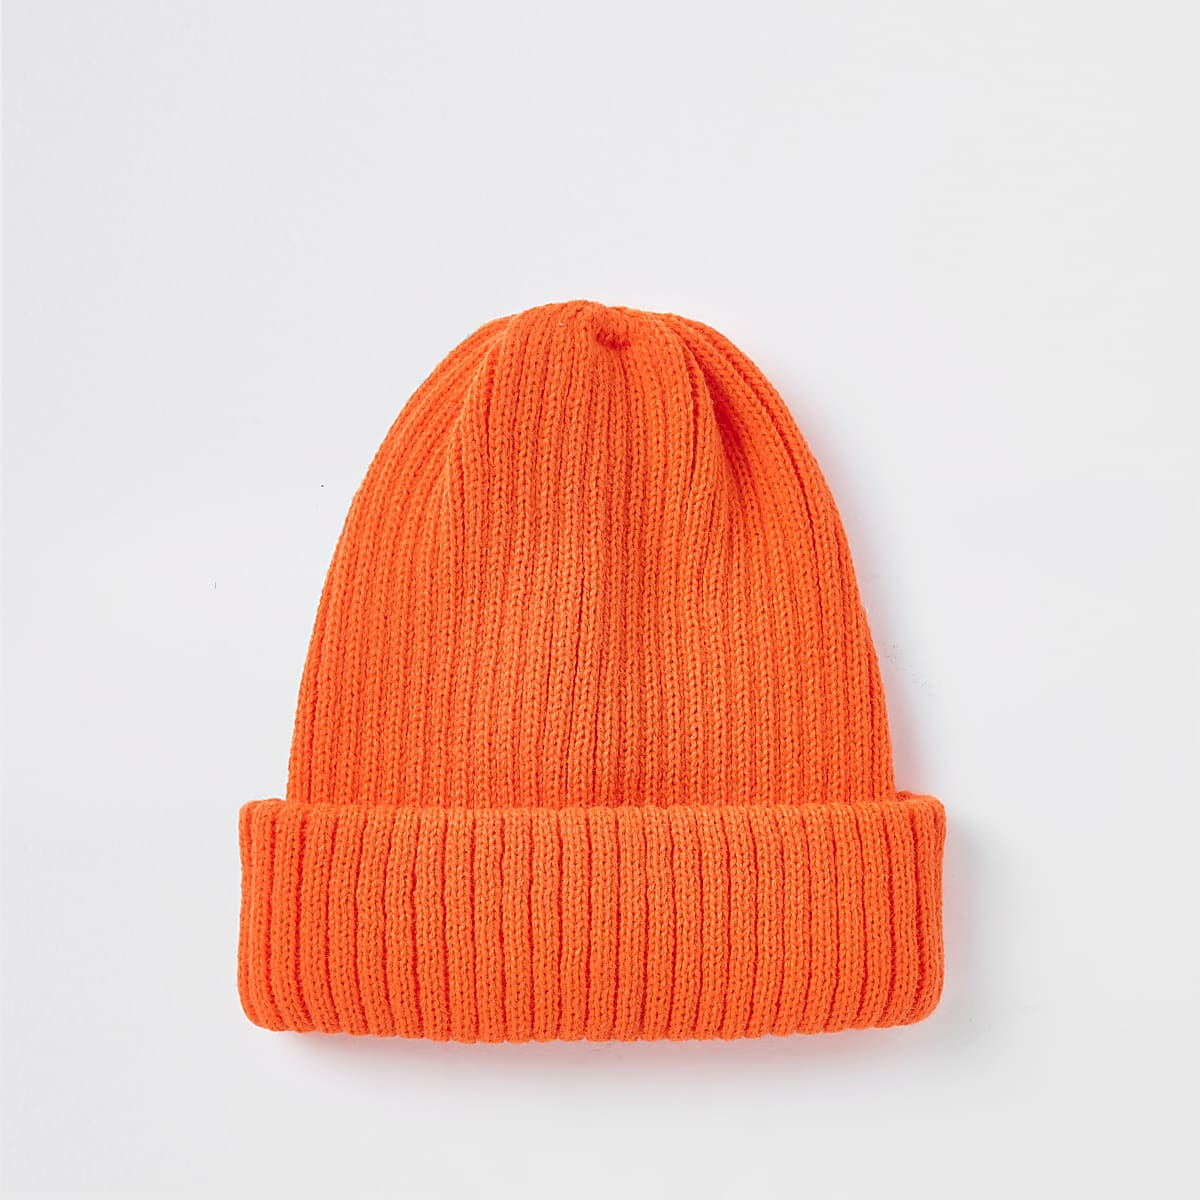 d25a84b846068 Neon orange fisherman knit beanie hat - Hats   Caps - Accessories - men